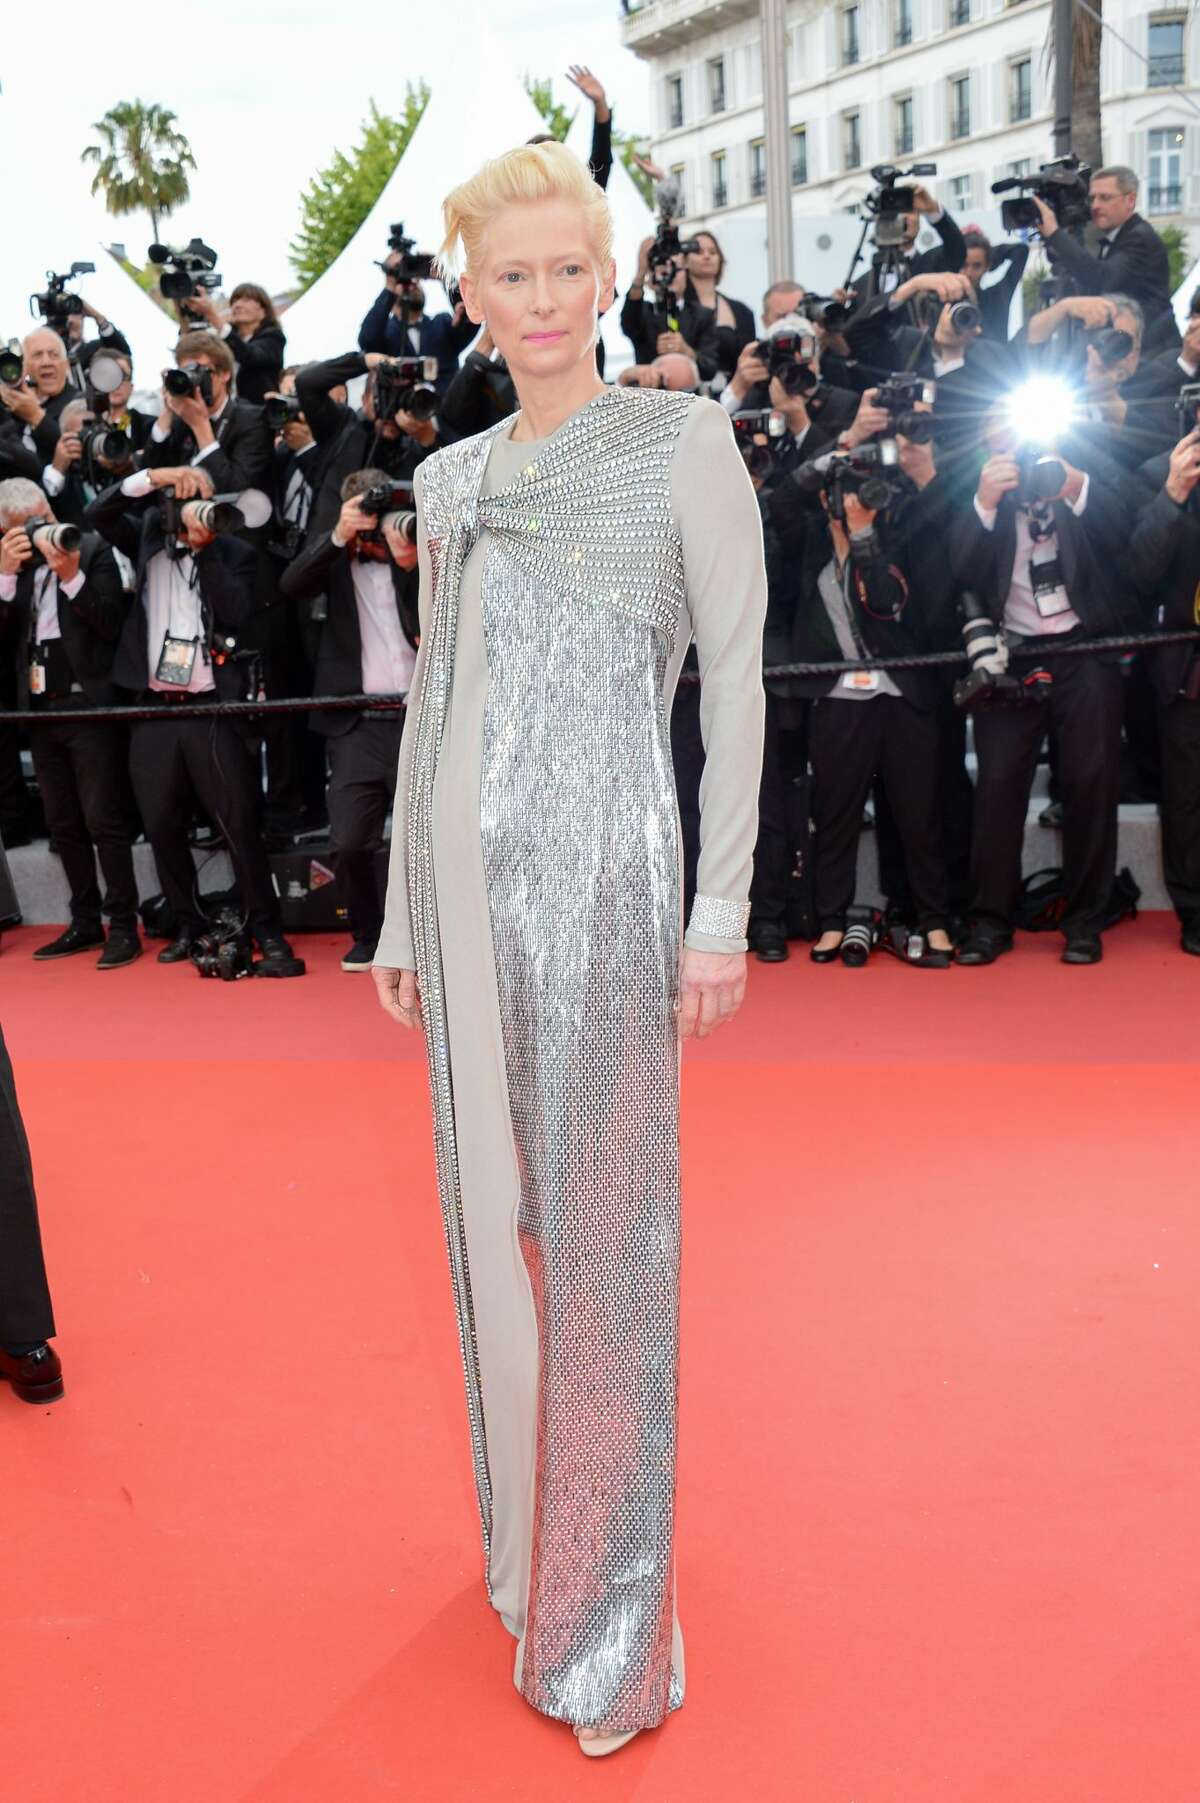 """CANNES, FRANCE - MAY 14: Tilda Swinton attends the opening ceremony and screening of """"The Dead Don't Die"""" during the 72nd annual Cannes Film Festival on May 14, 2019 in Cannes, France. (Photo by Stephane Cardinale - Corbis/Corbis via Getty Images)"""